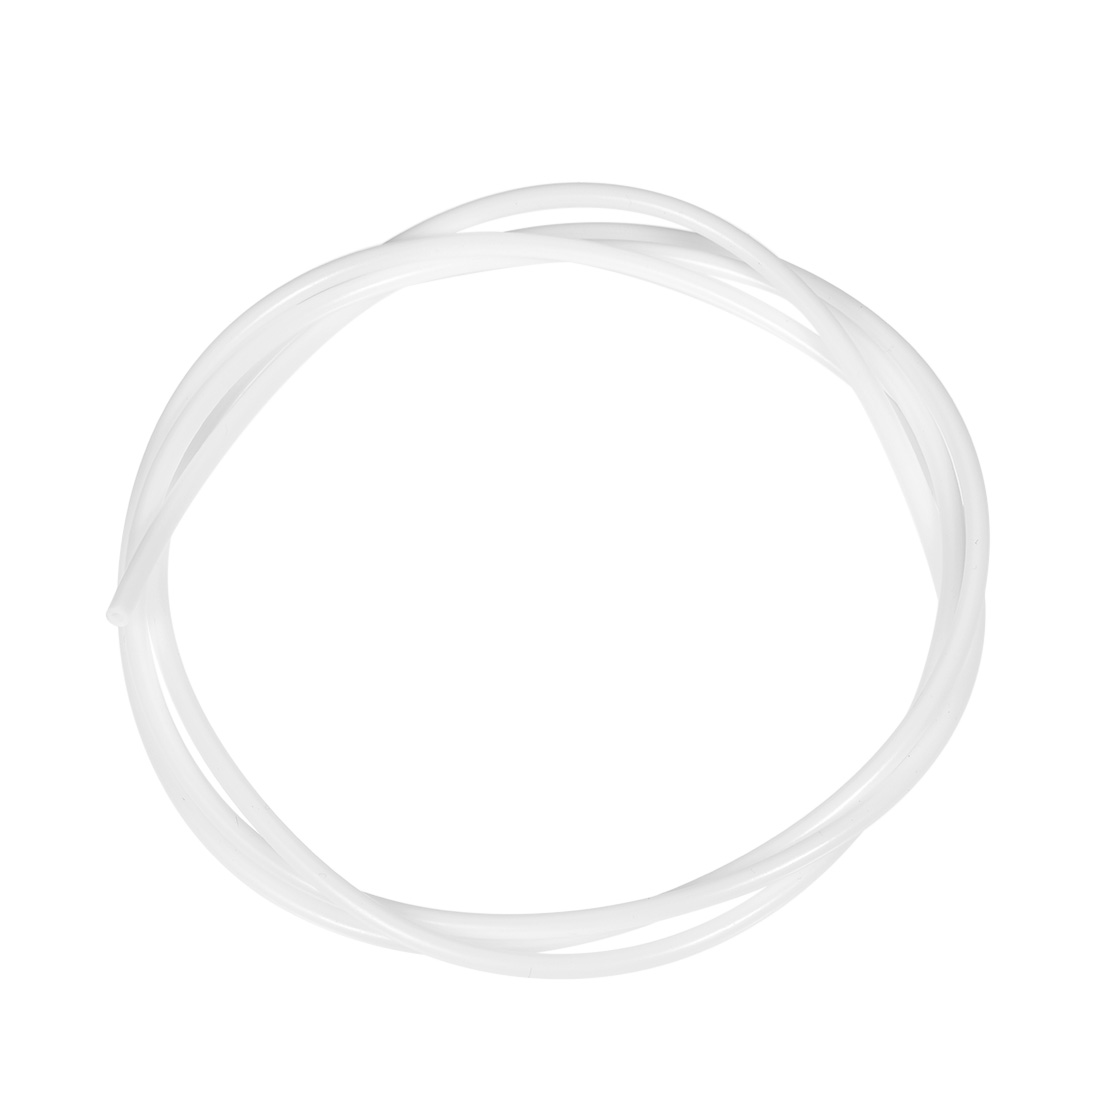 PTFE Tube 4.9Ft - ID 2mm x OD 4mm Fit 1.75 Filament for 3D Printer White